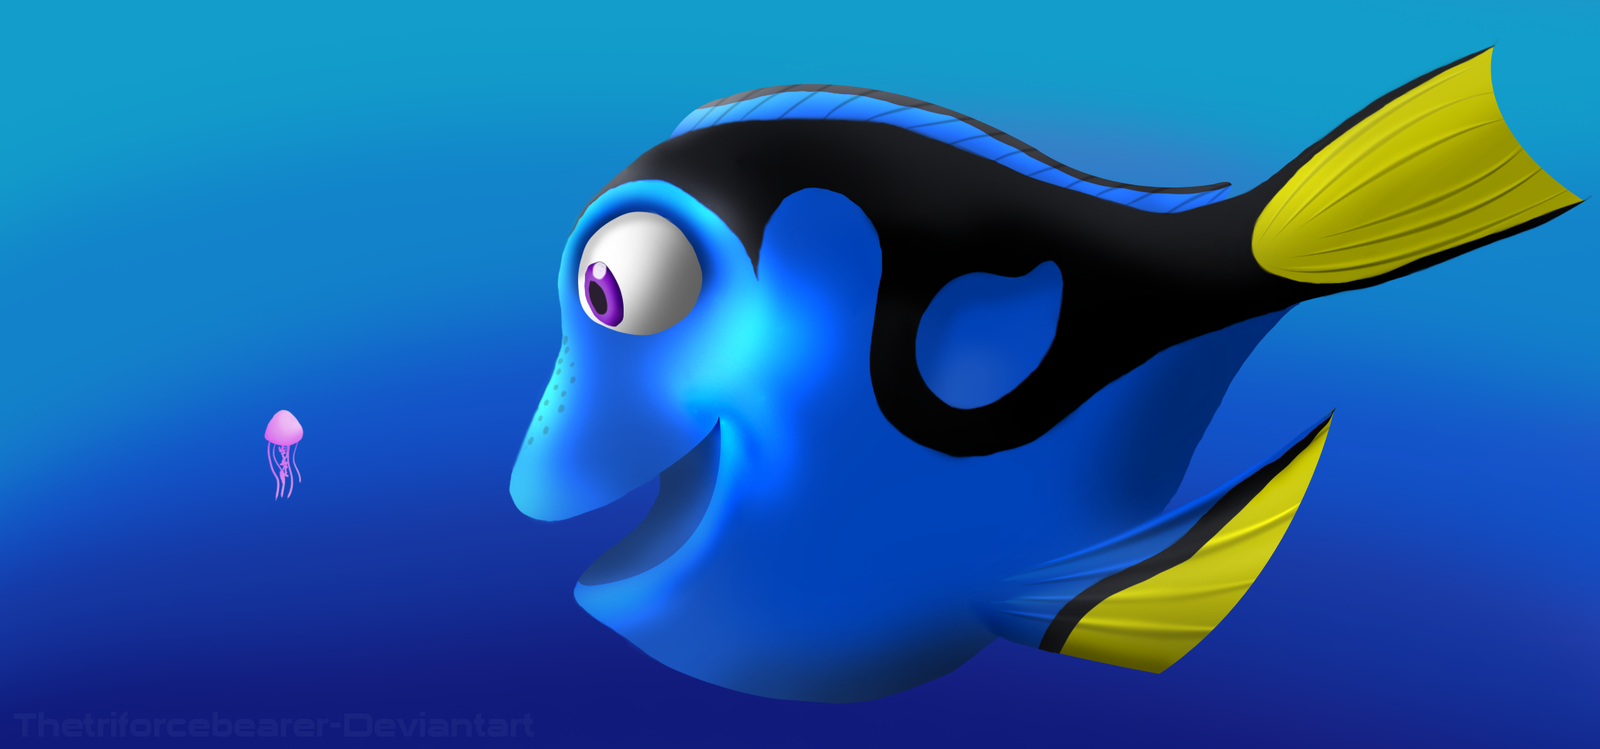 The dory fish quotes quotesgram for Finding nemo fish